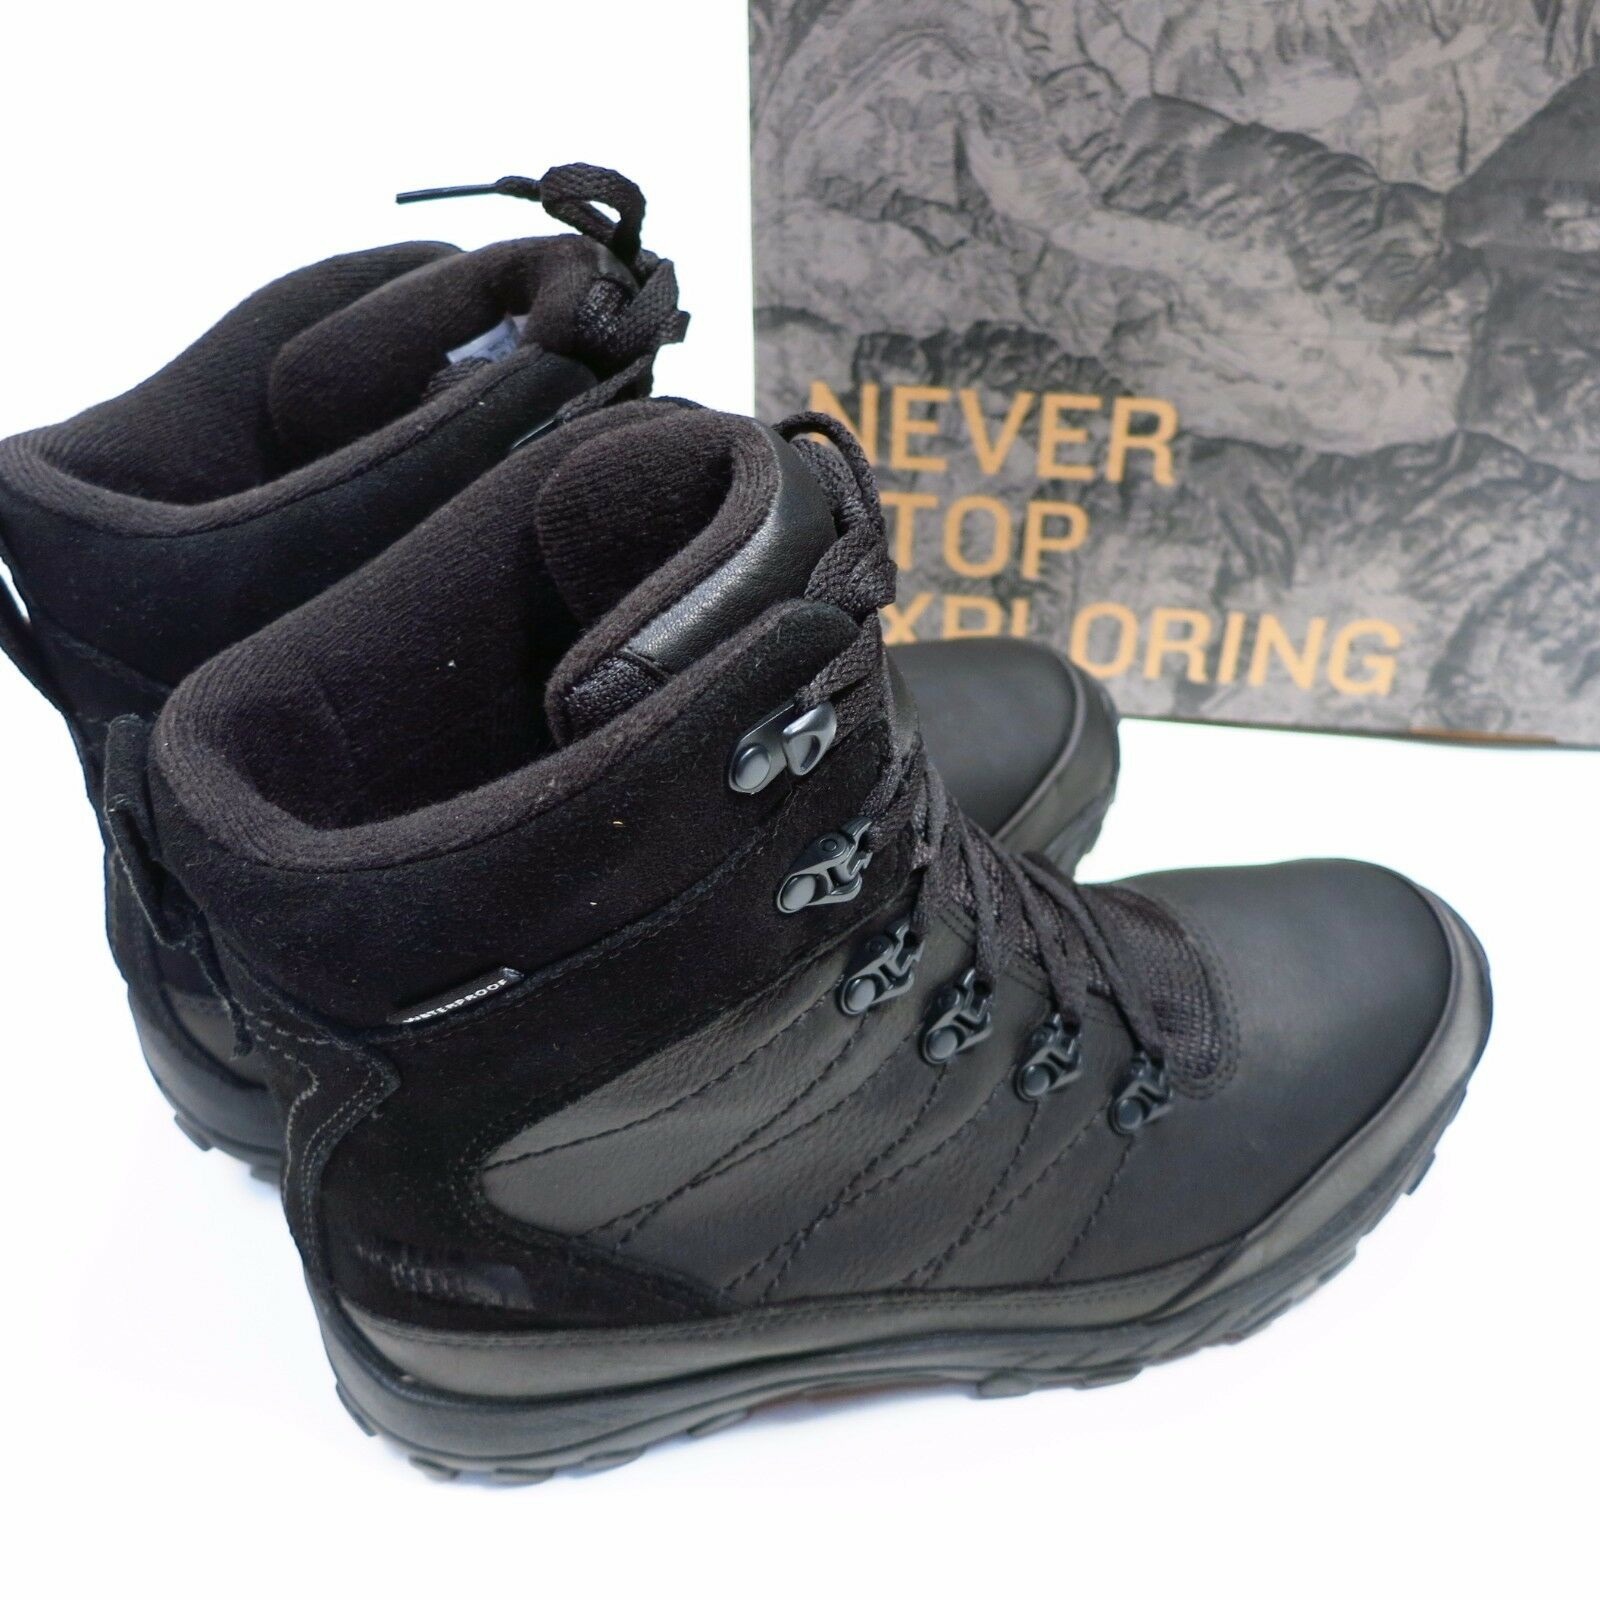 $120 Men's North Chilkat Face Chilkat North Leather Boots Size 11.5 Black NEW f30da1